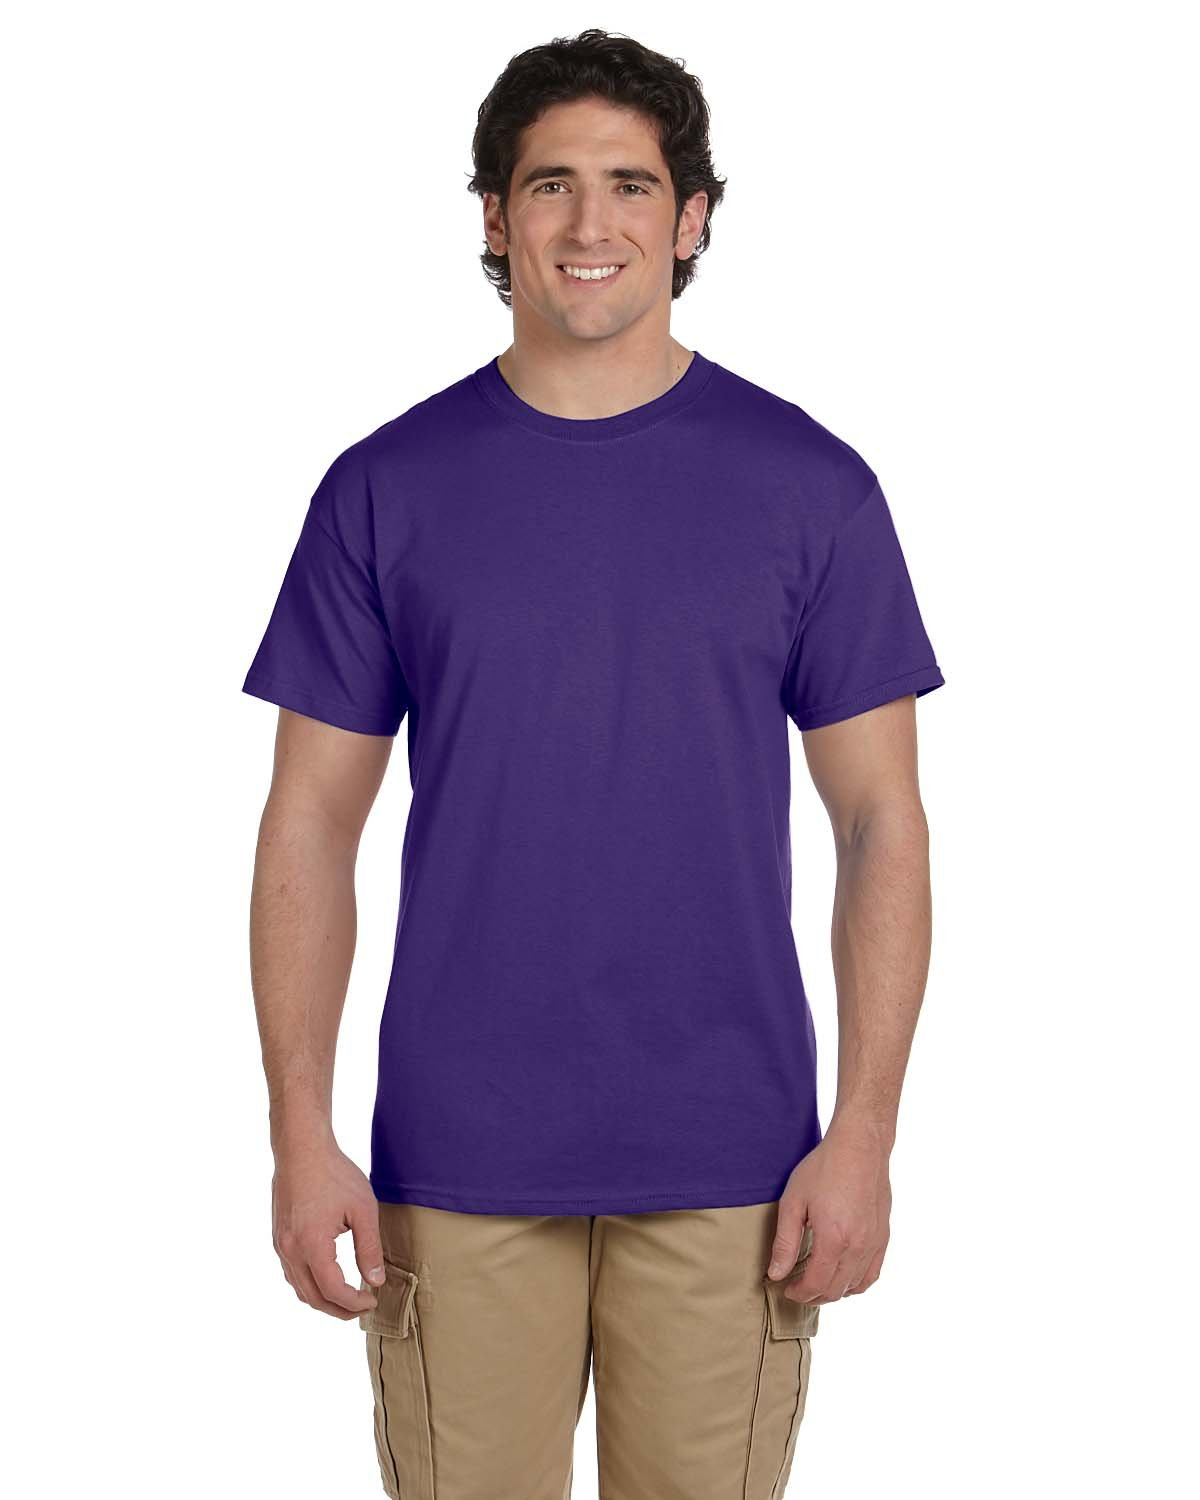 Fruit of the Loom Adult HD Cotton™ T-Shirt PURPLE